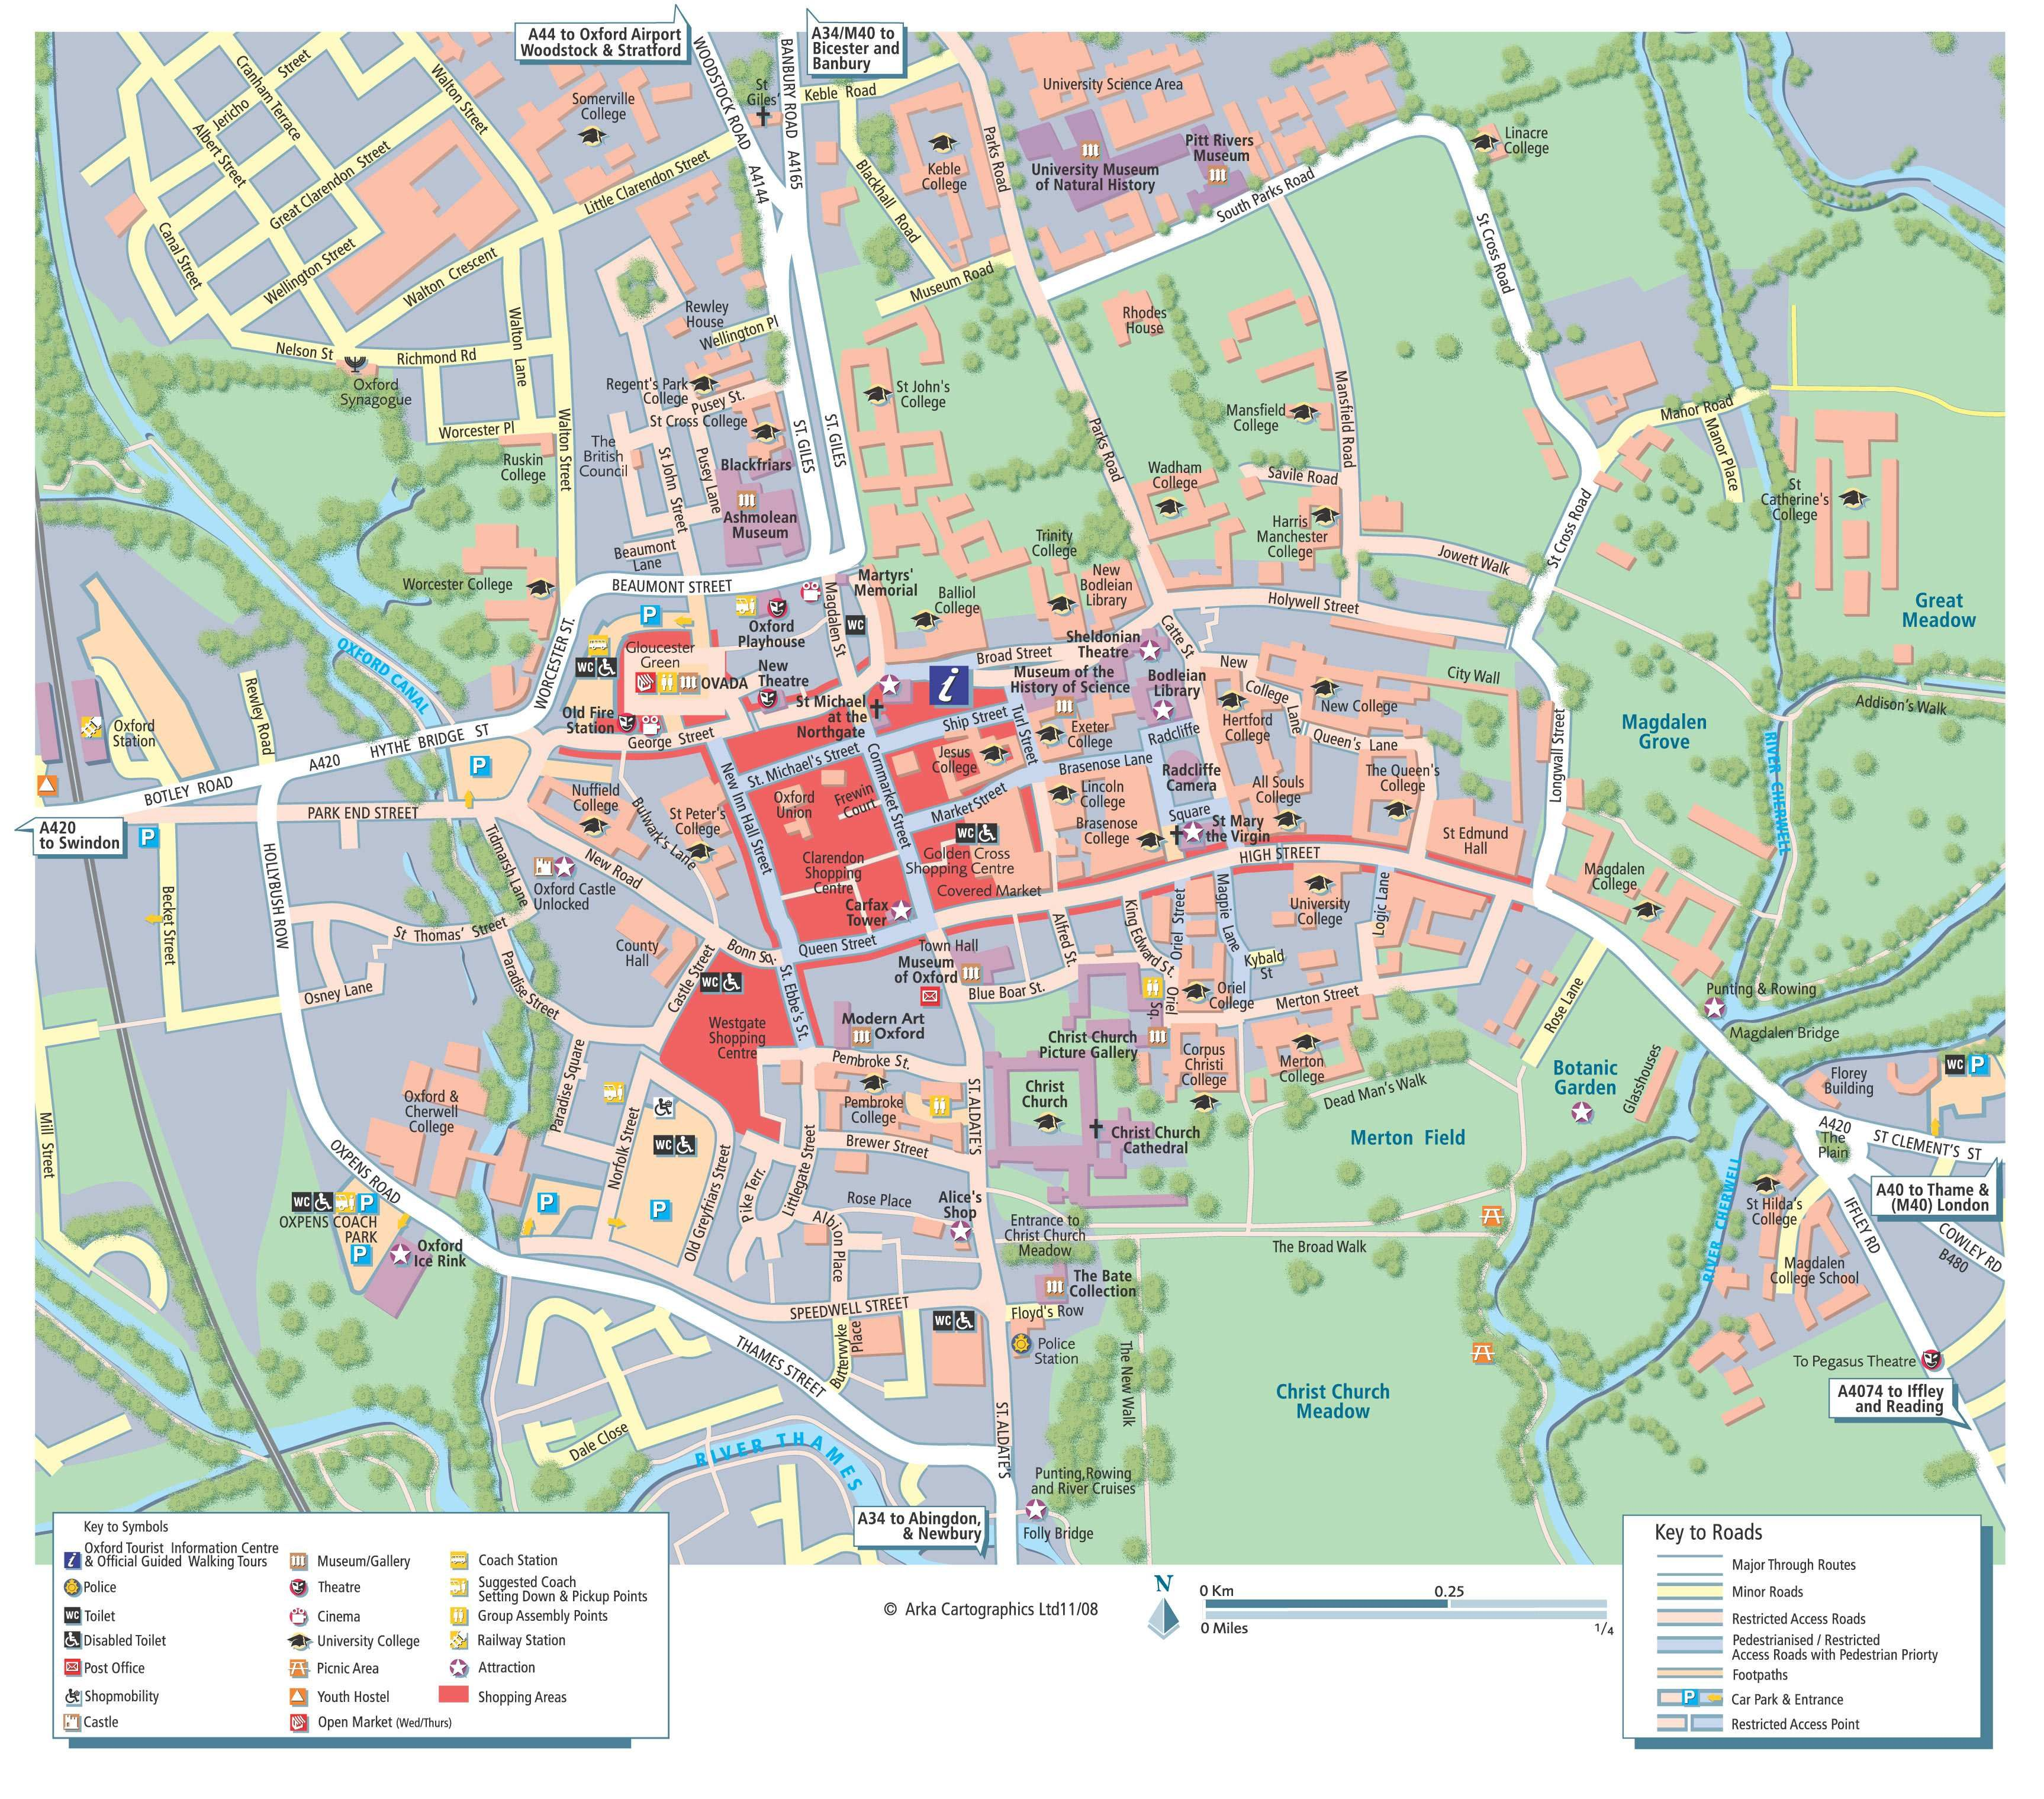 London Tourist Map To Print.Detailed Map Of Oxford For Print Or Download Oxford Oxford Map